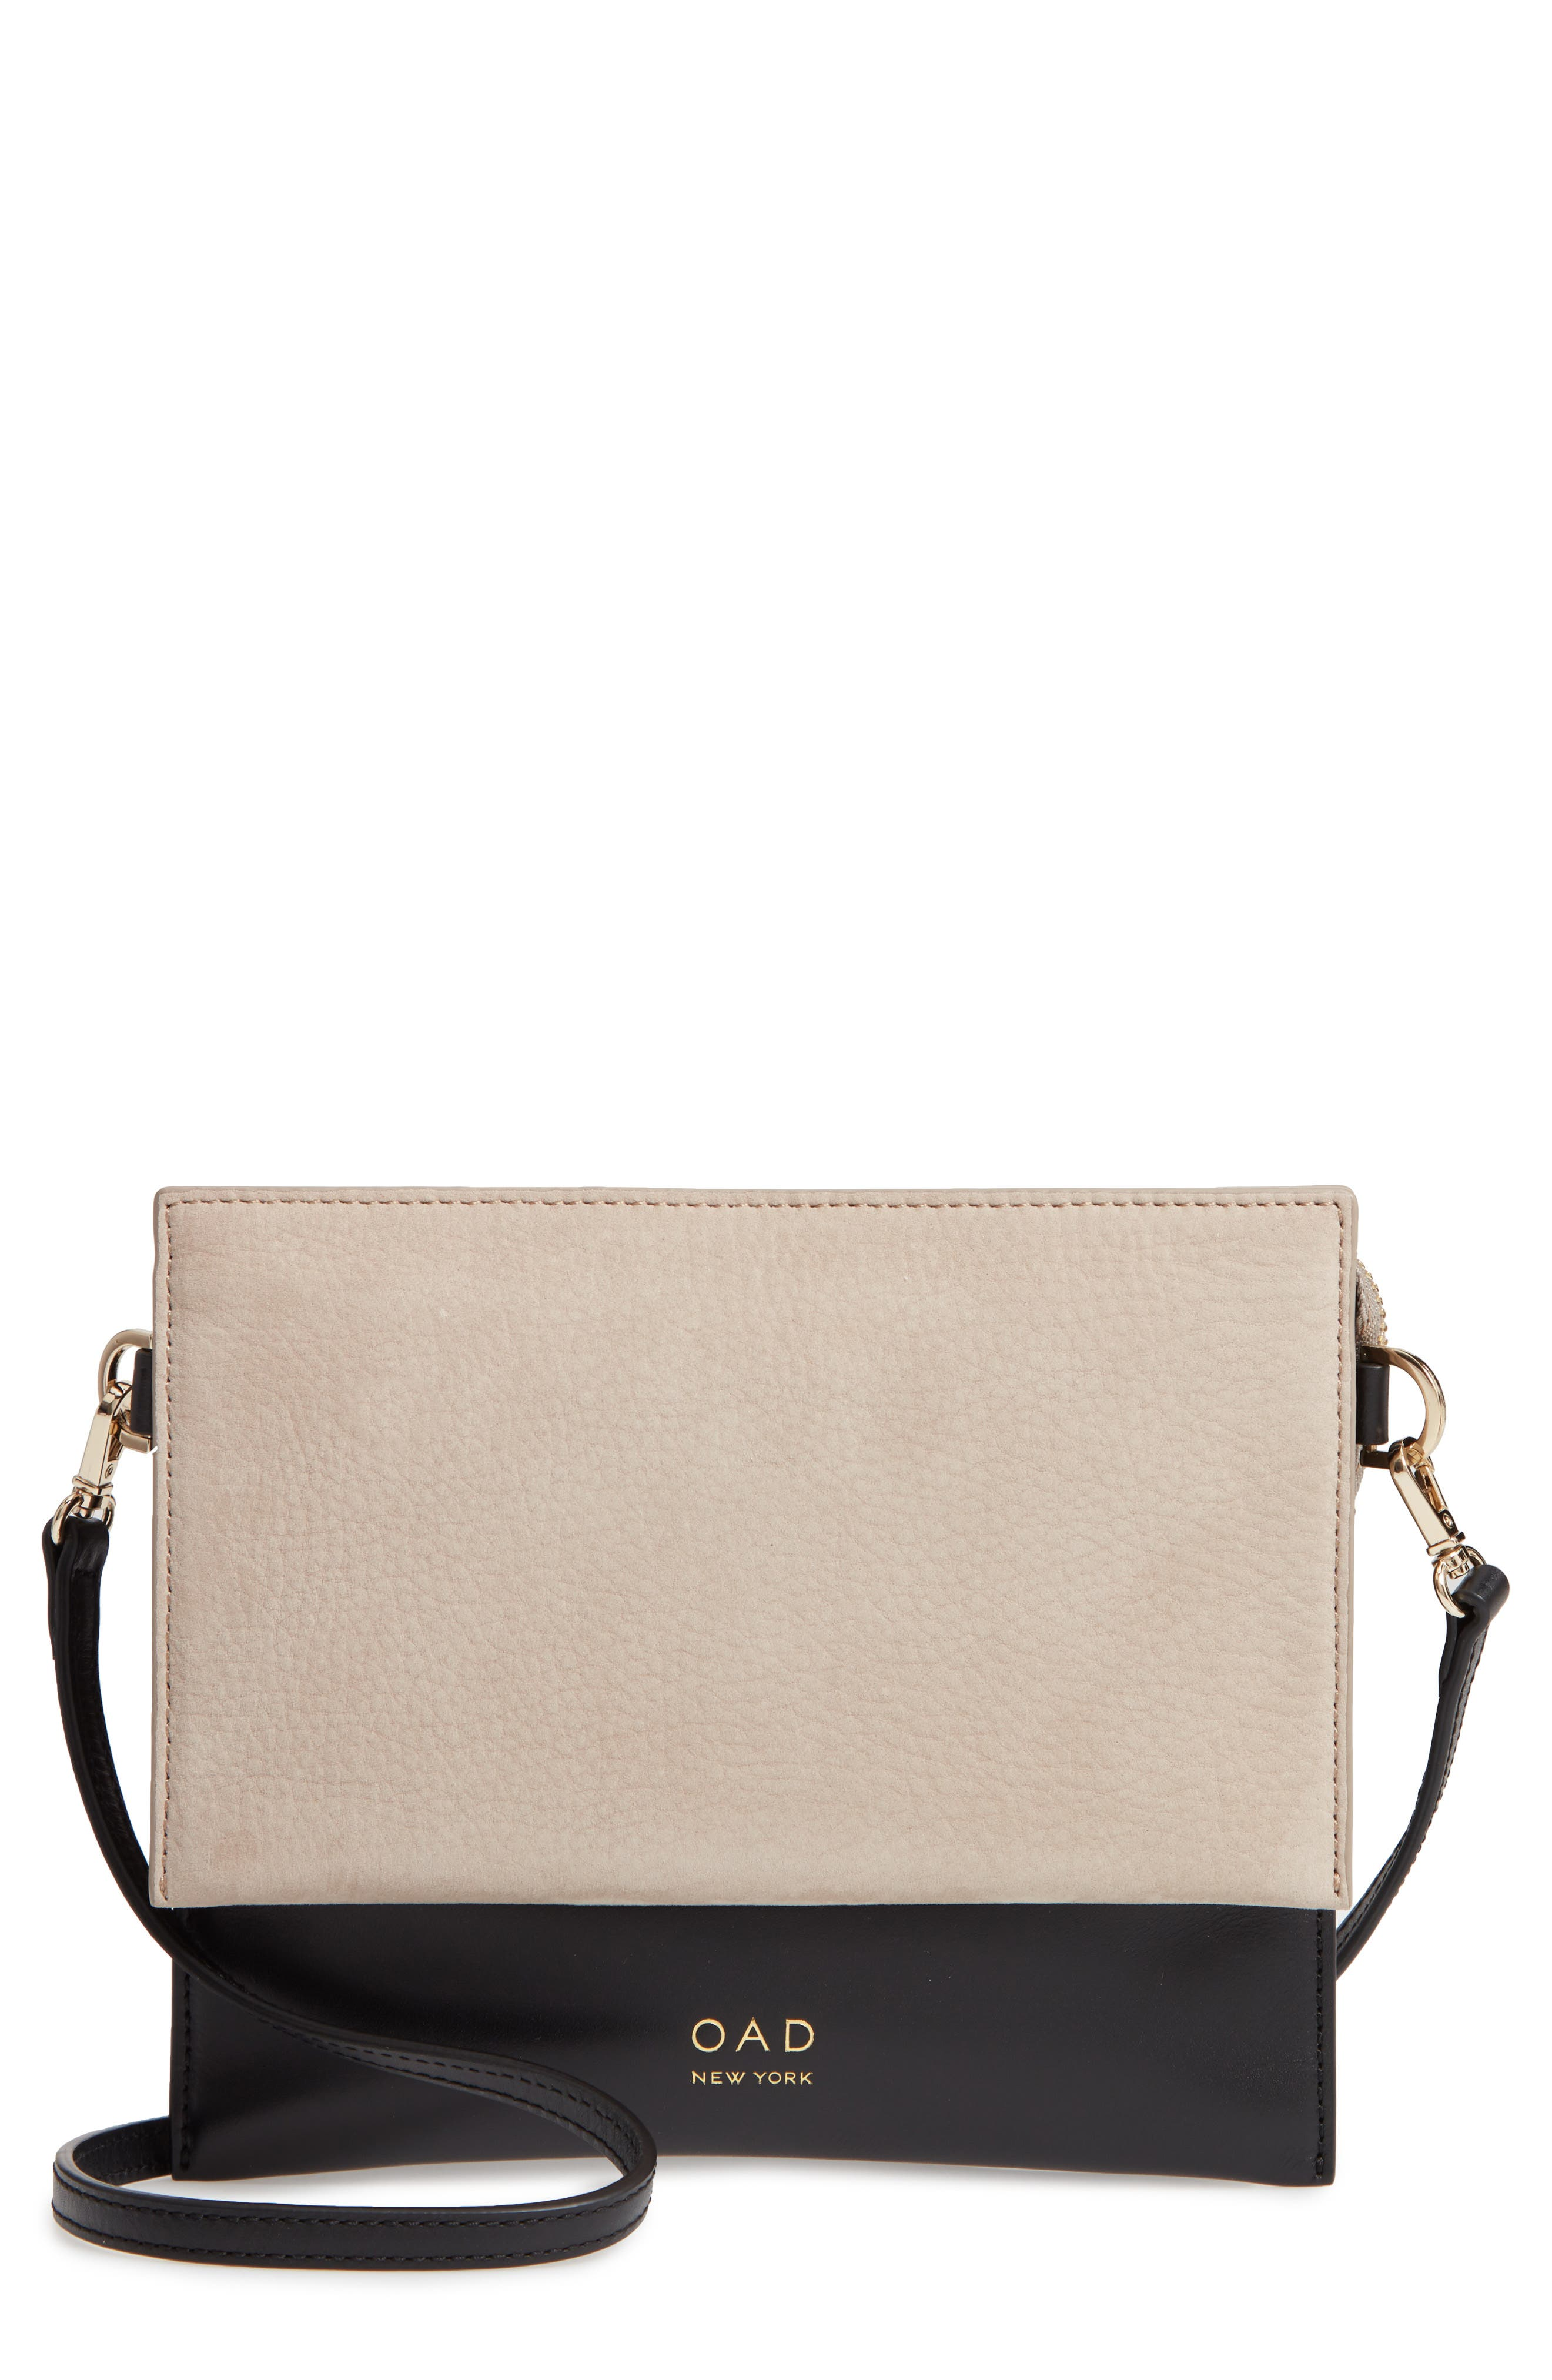 Triple Leather & Suede Crossbody Bag,                         Main,                         color, TAUPE/ TRUE BLACK